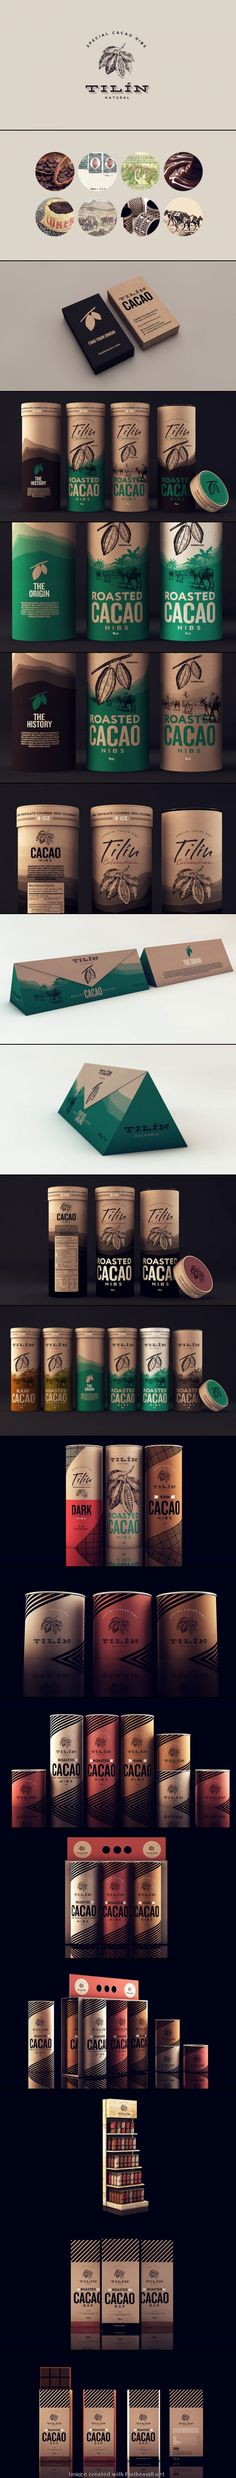 Packaging / Tilín Cacao by Isabela Rodrigues